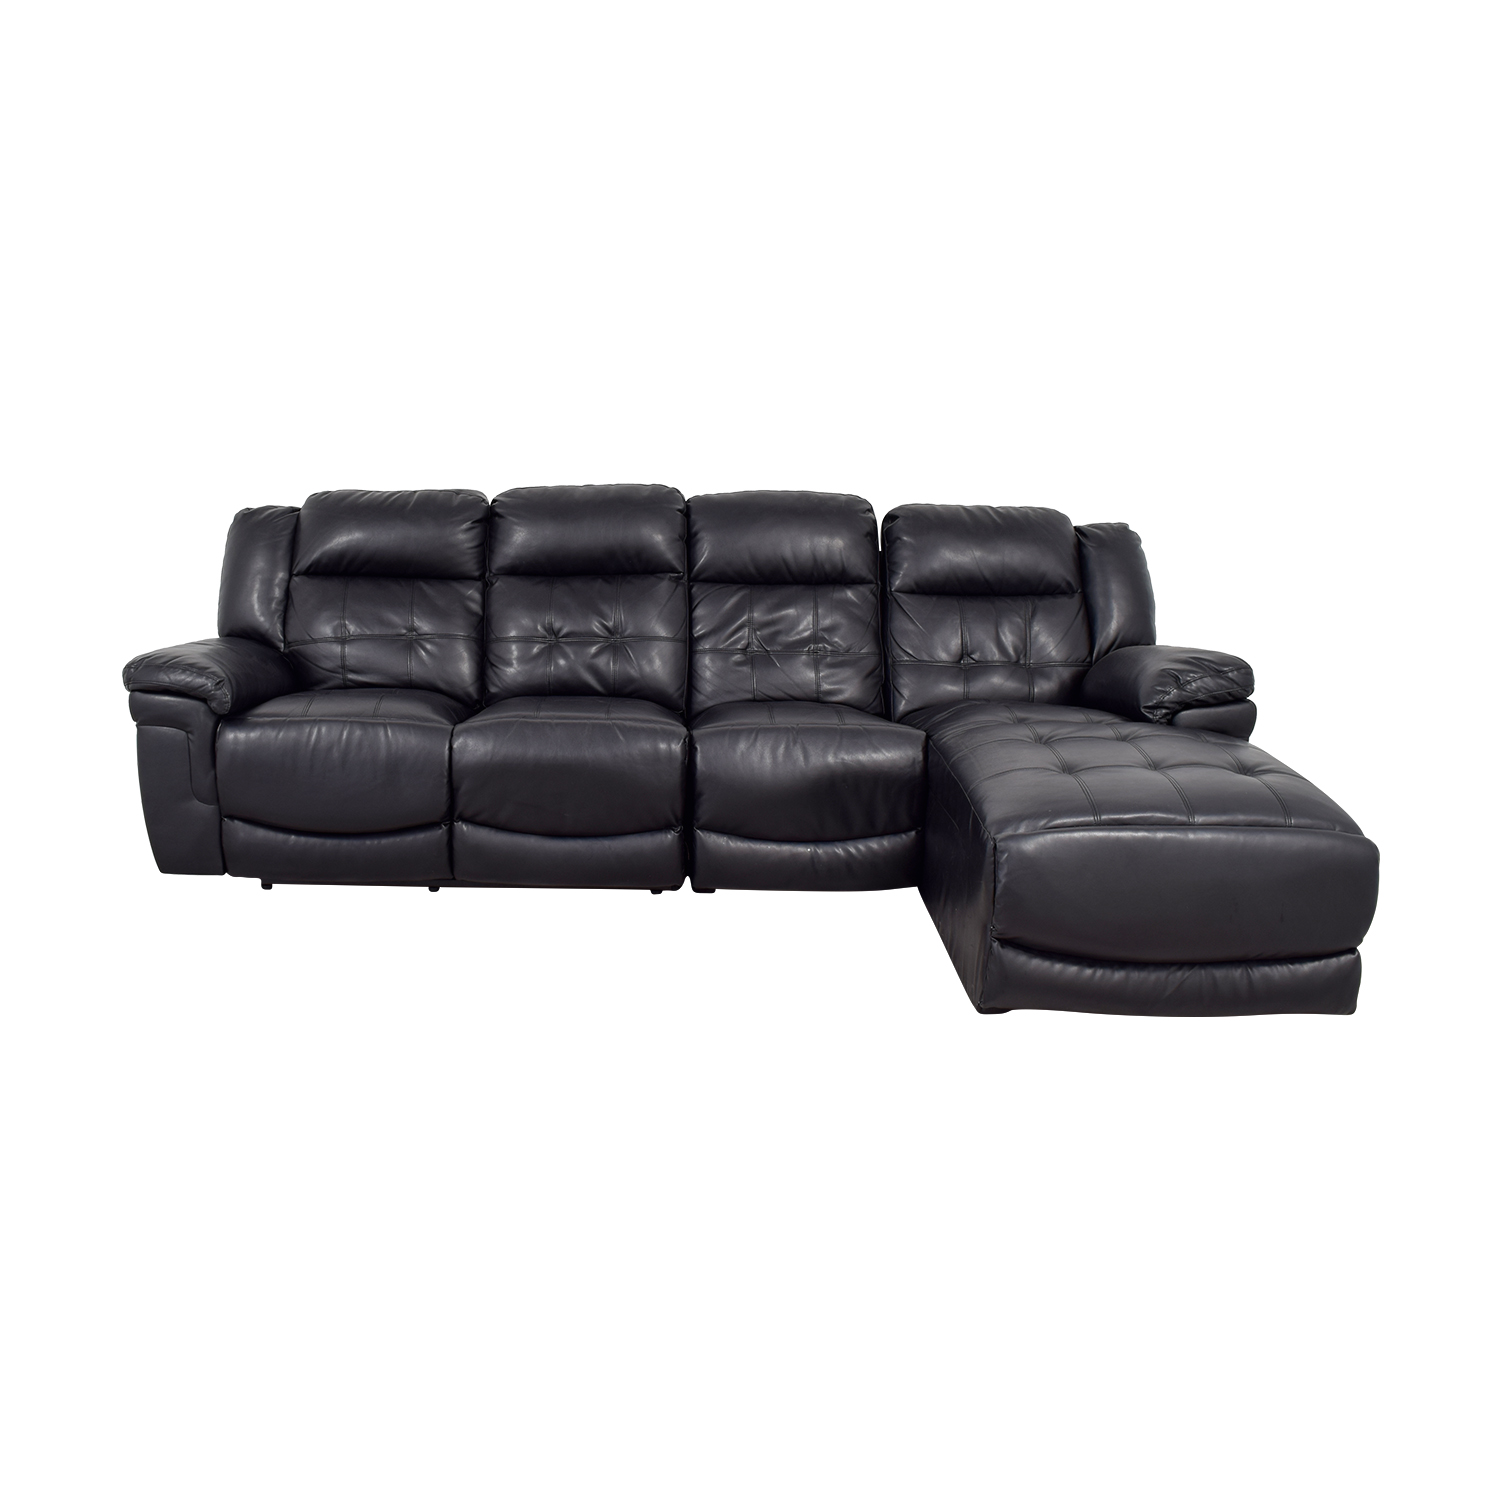 59% OFF - Black Leather Sectional with Recliner / Sofas